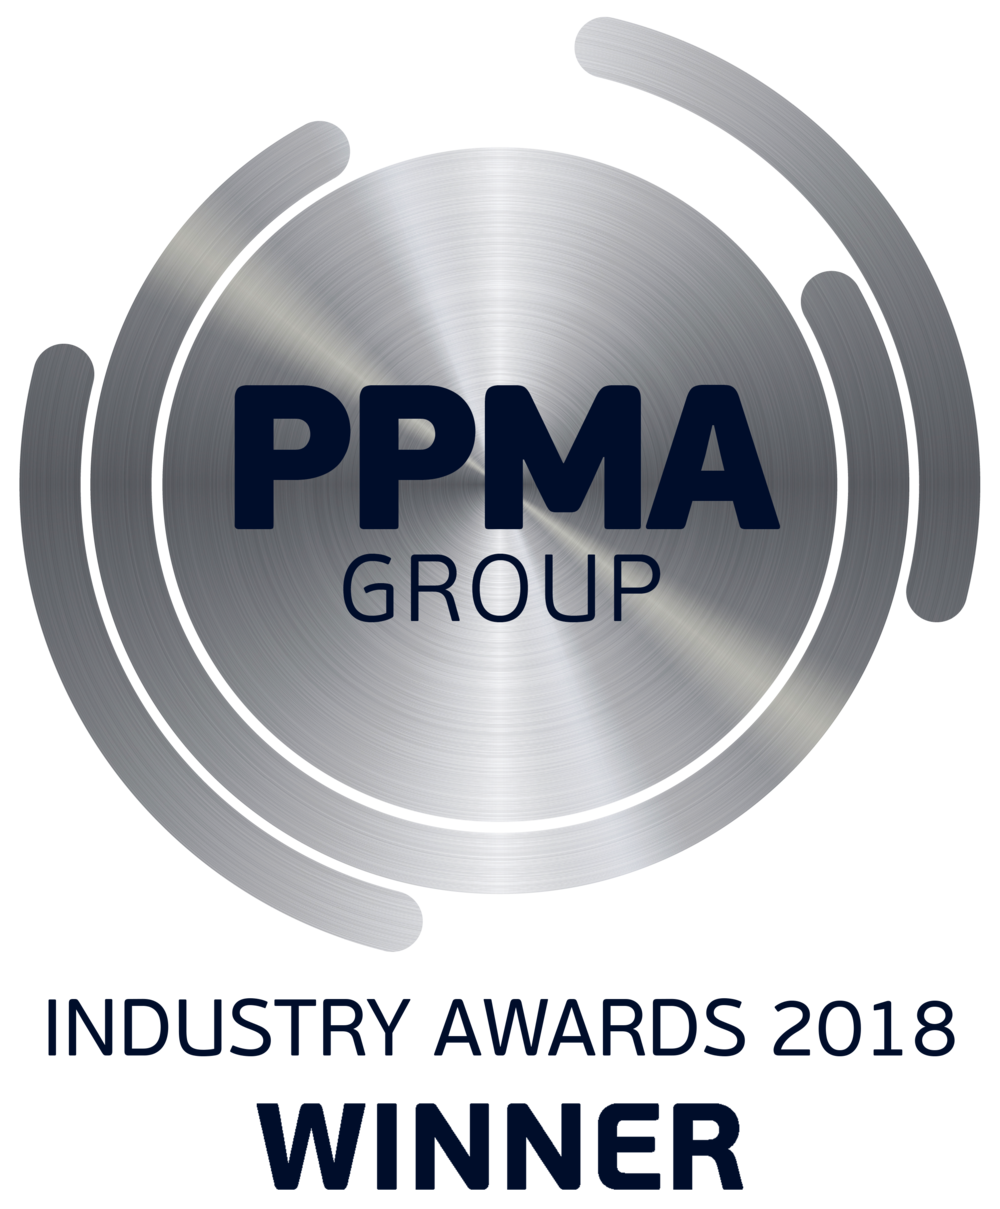 PPMA Group Awards Winner badge_portrait.png